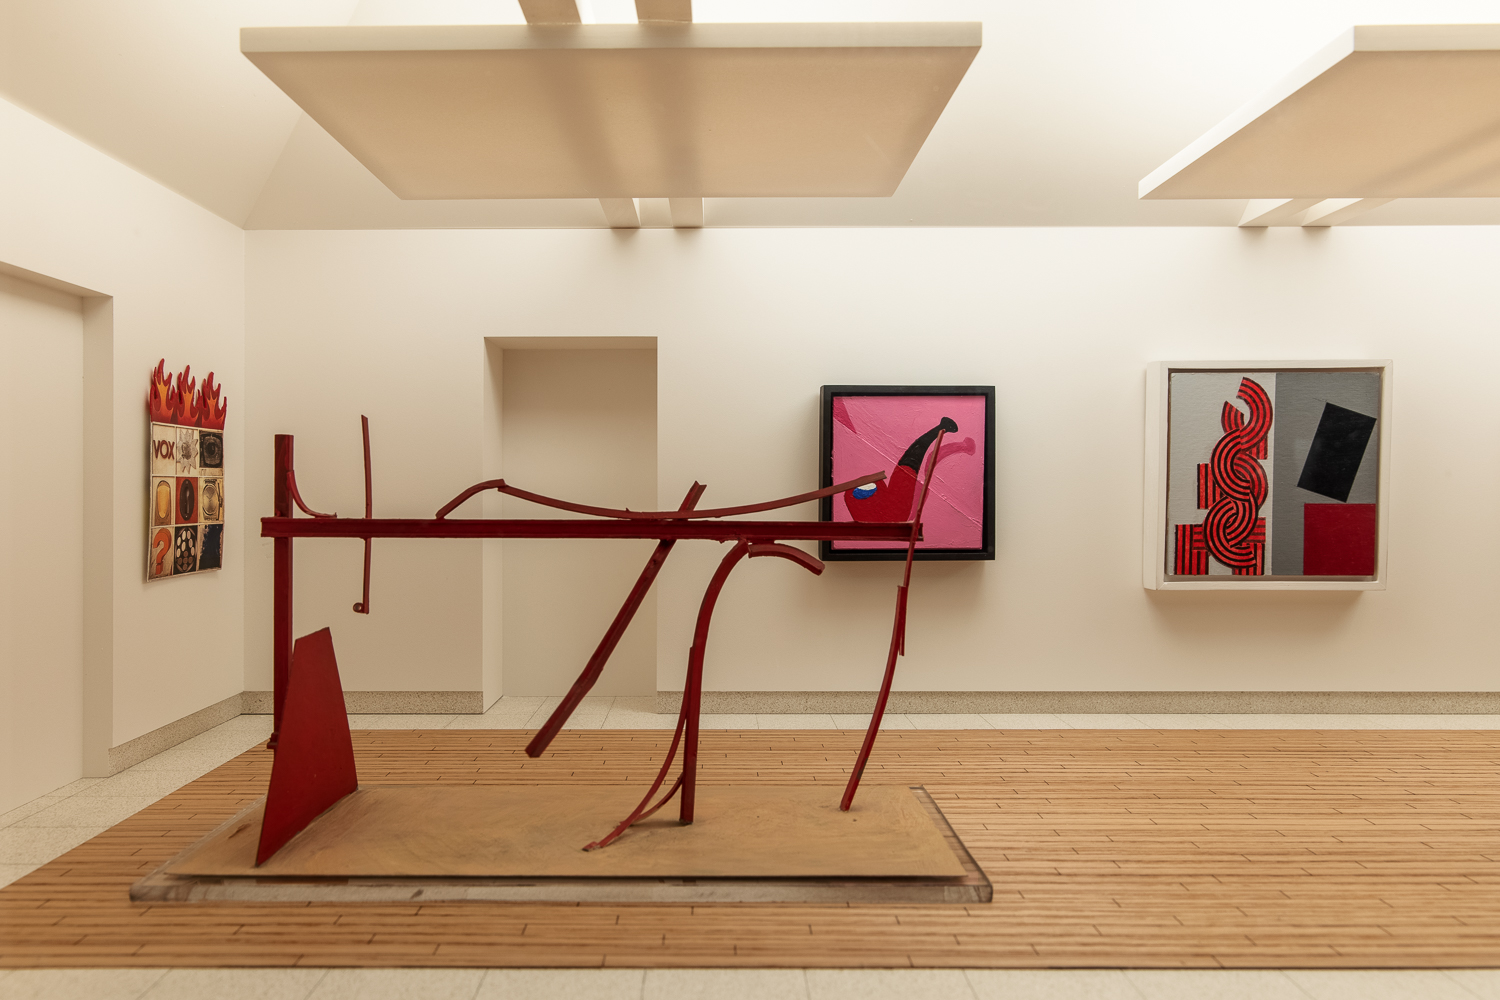 A model art gallery room with white walls, a dropped ceiling and wooden and stone look flooring. On the left hand wall is a painting with nine boxes containing different words, images and symbols and with thhree flames coming out the top of it. In the centre is a painting of a red pipe against a pink background. To the right of that is an abstract painting with a two tone grey background and blocks of red and black. In the foreground and to the left is a red metal abstract sculpture.